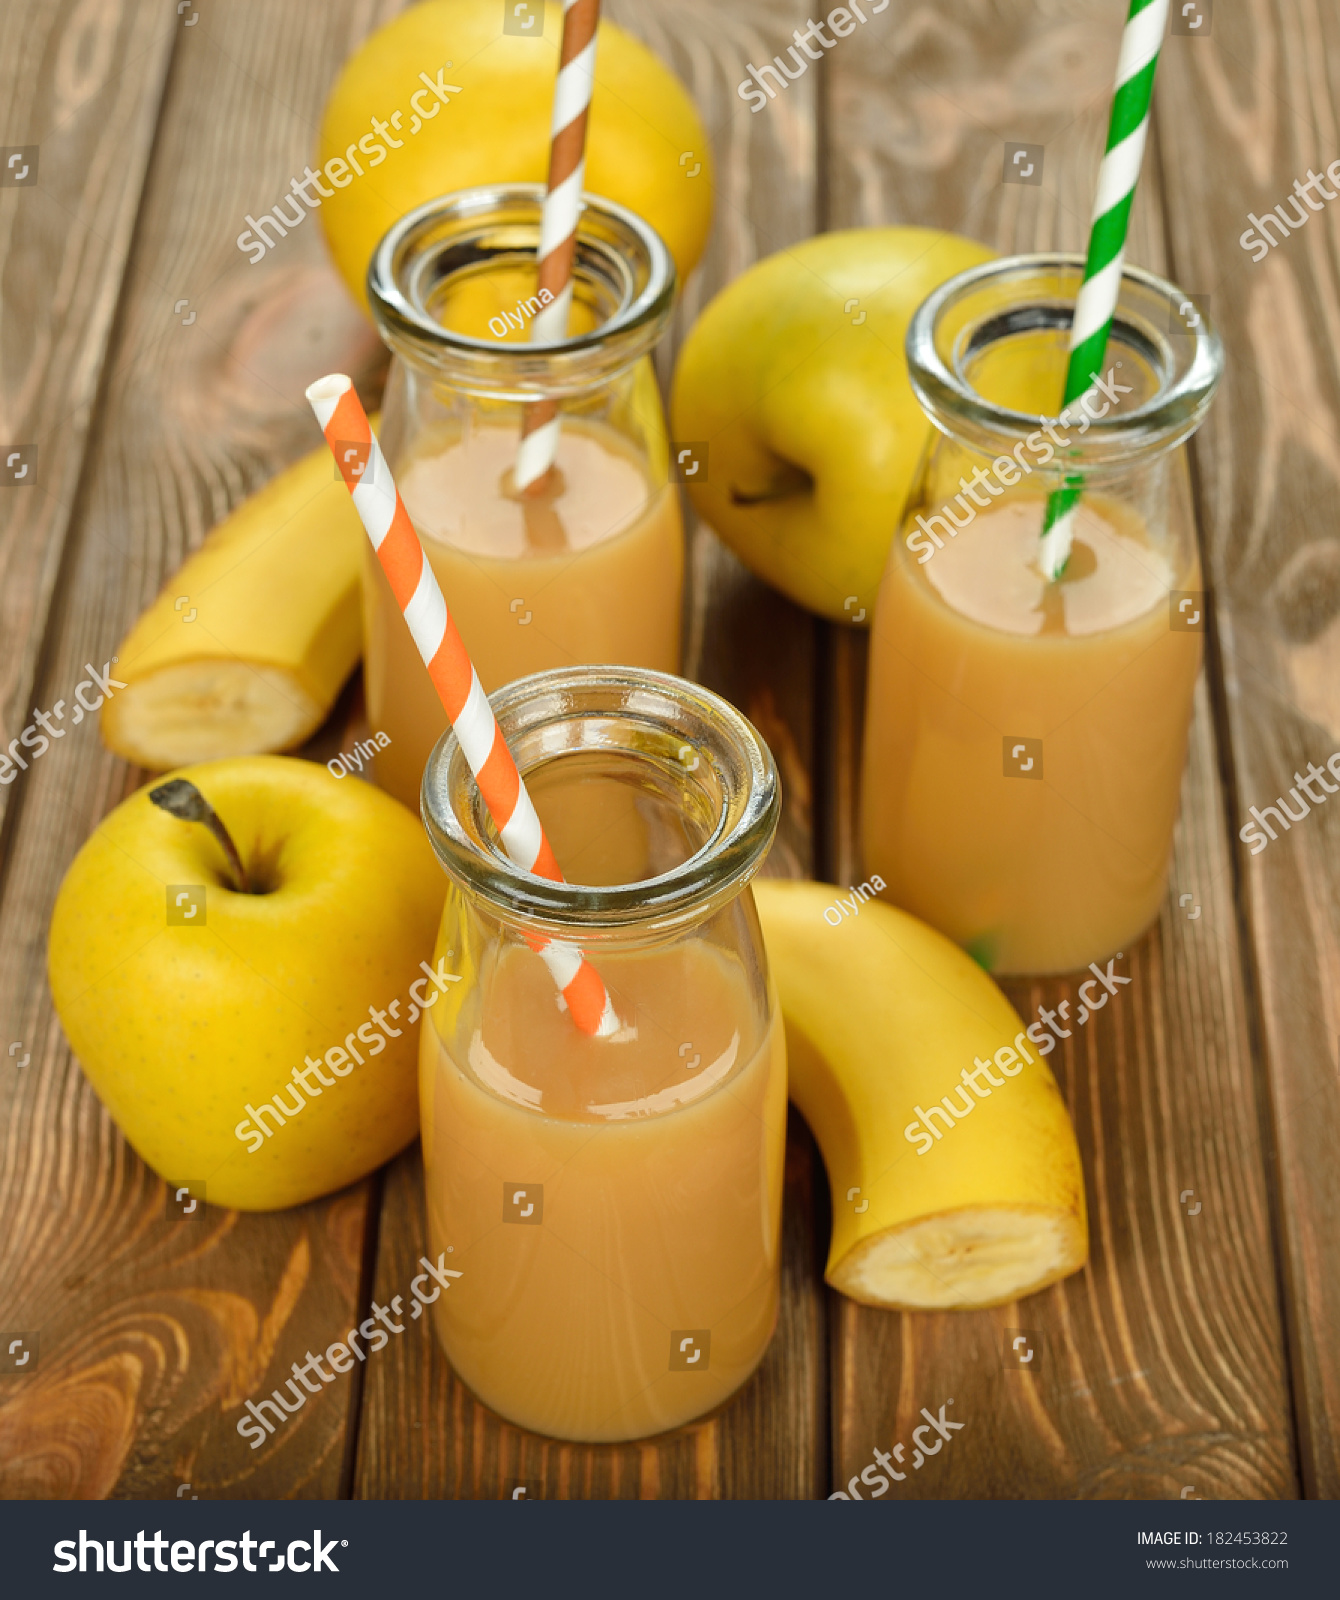 how to make a smoothie with banana and apple